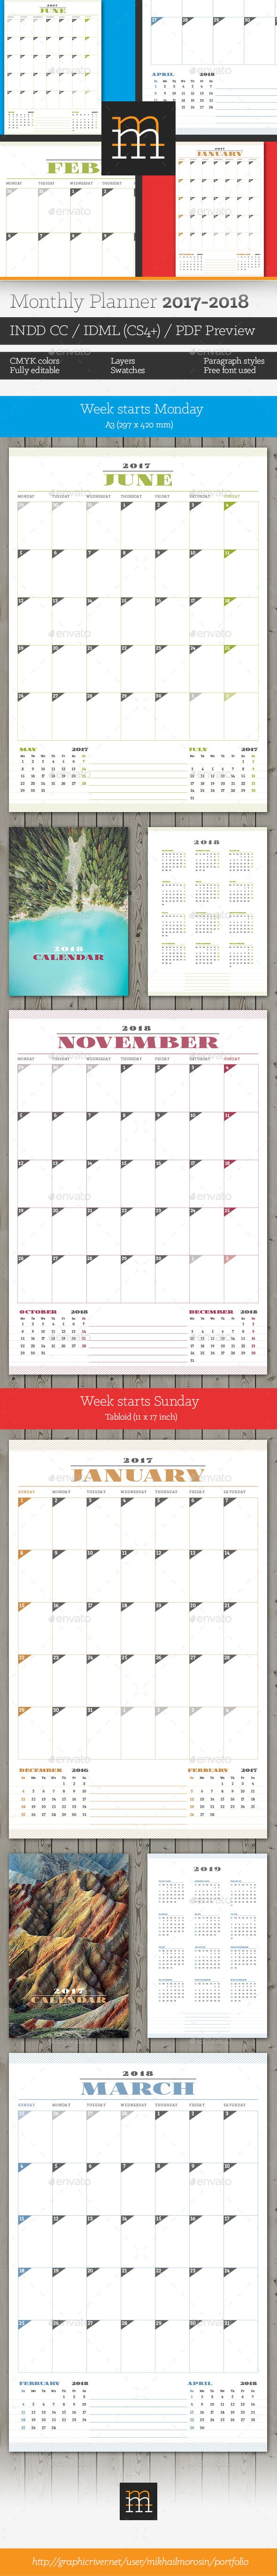 Monthly Planner 2017-2018 Template InDesign INDD